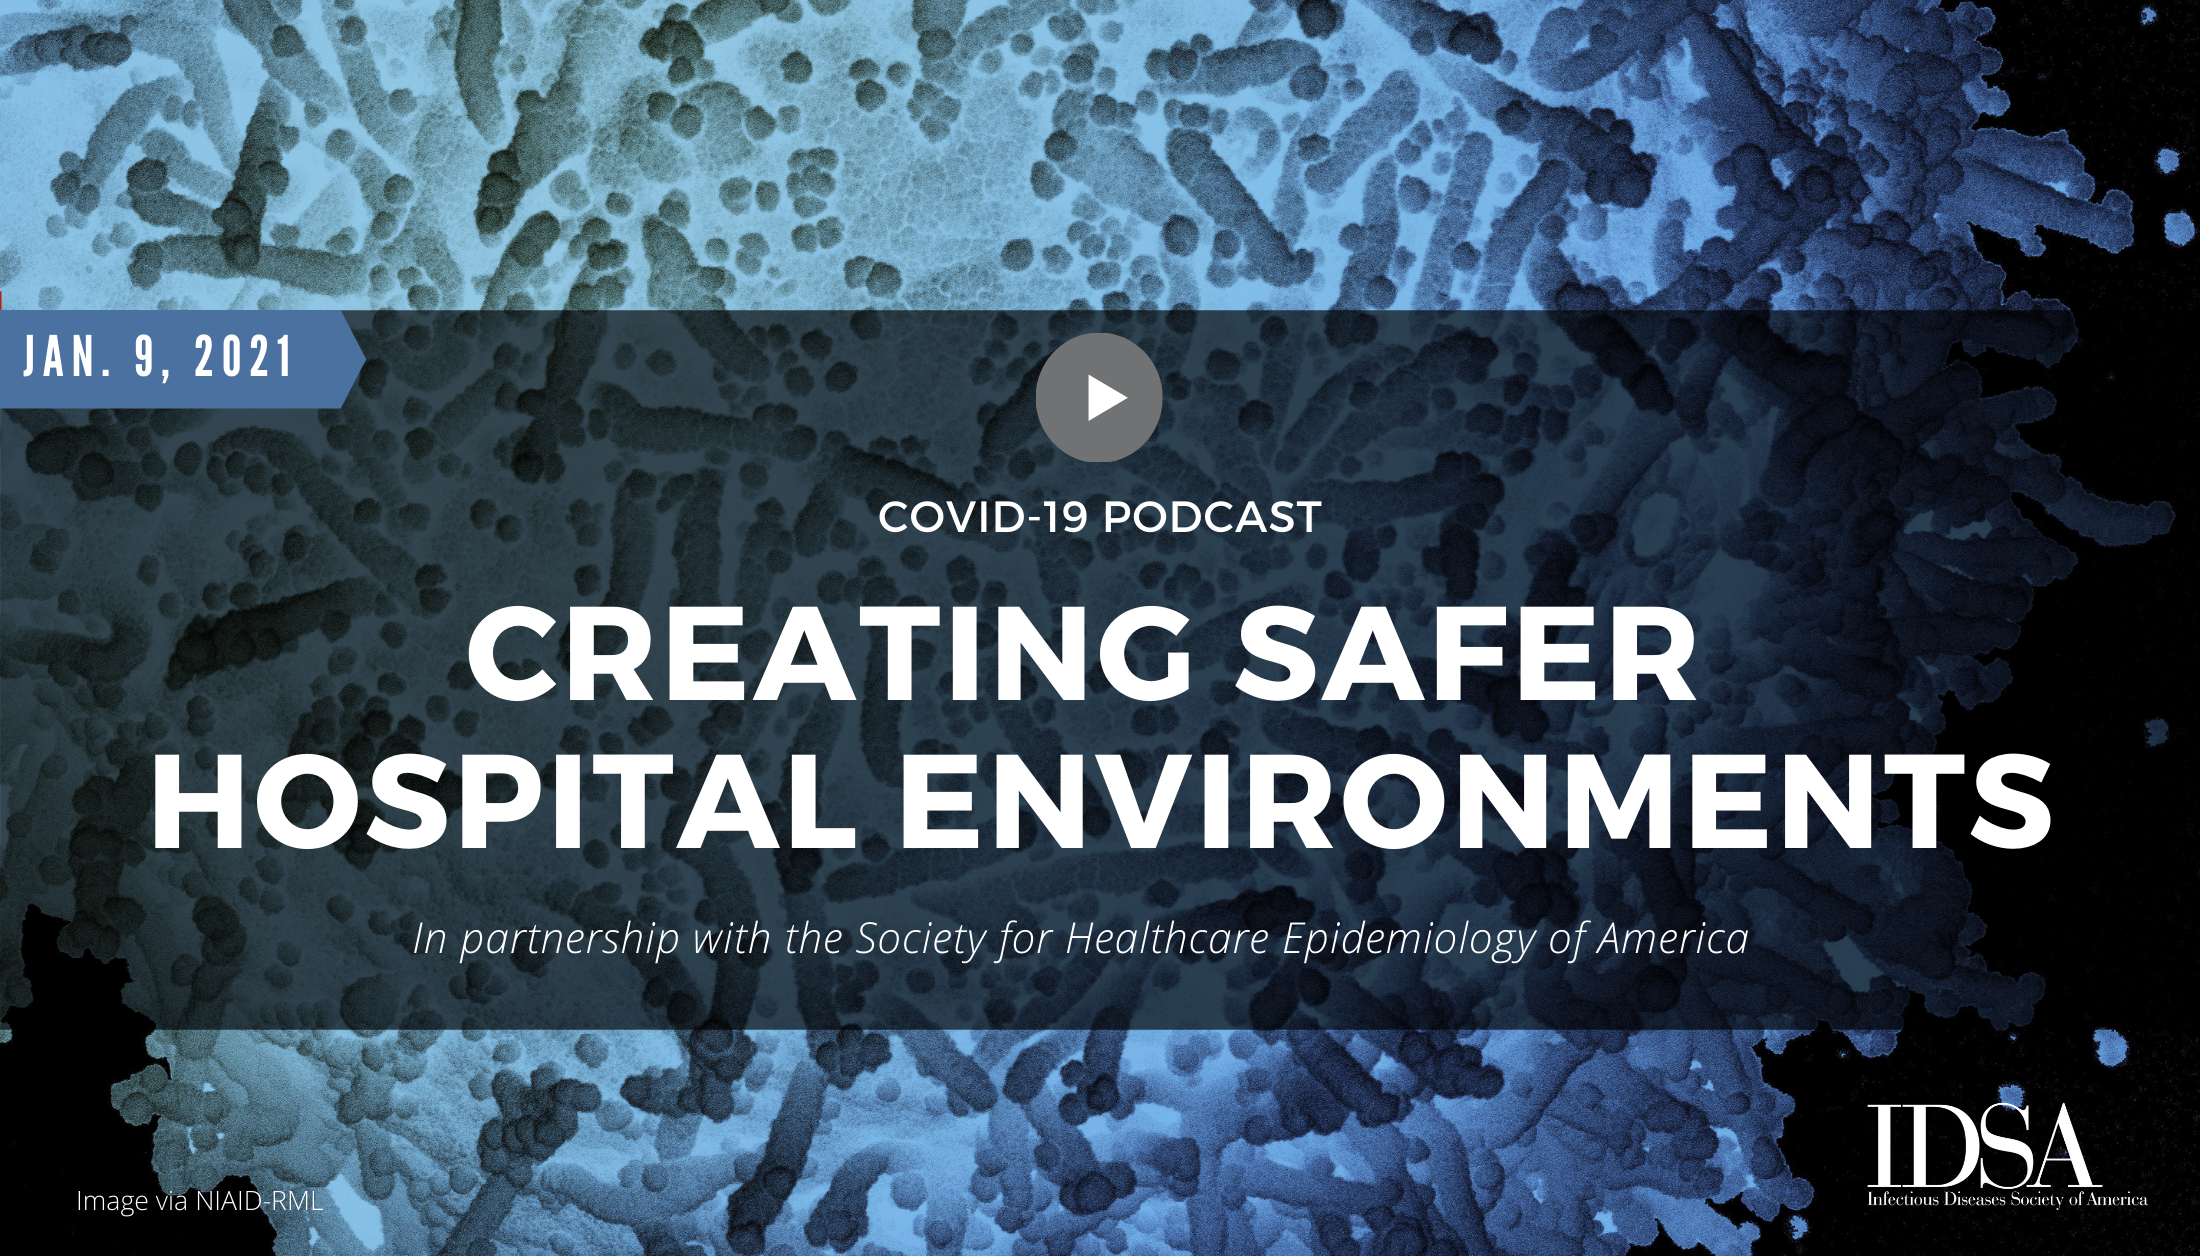 COVID-19: Creating Safer Hospital Environments